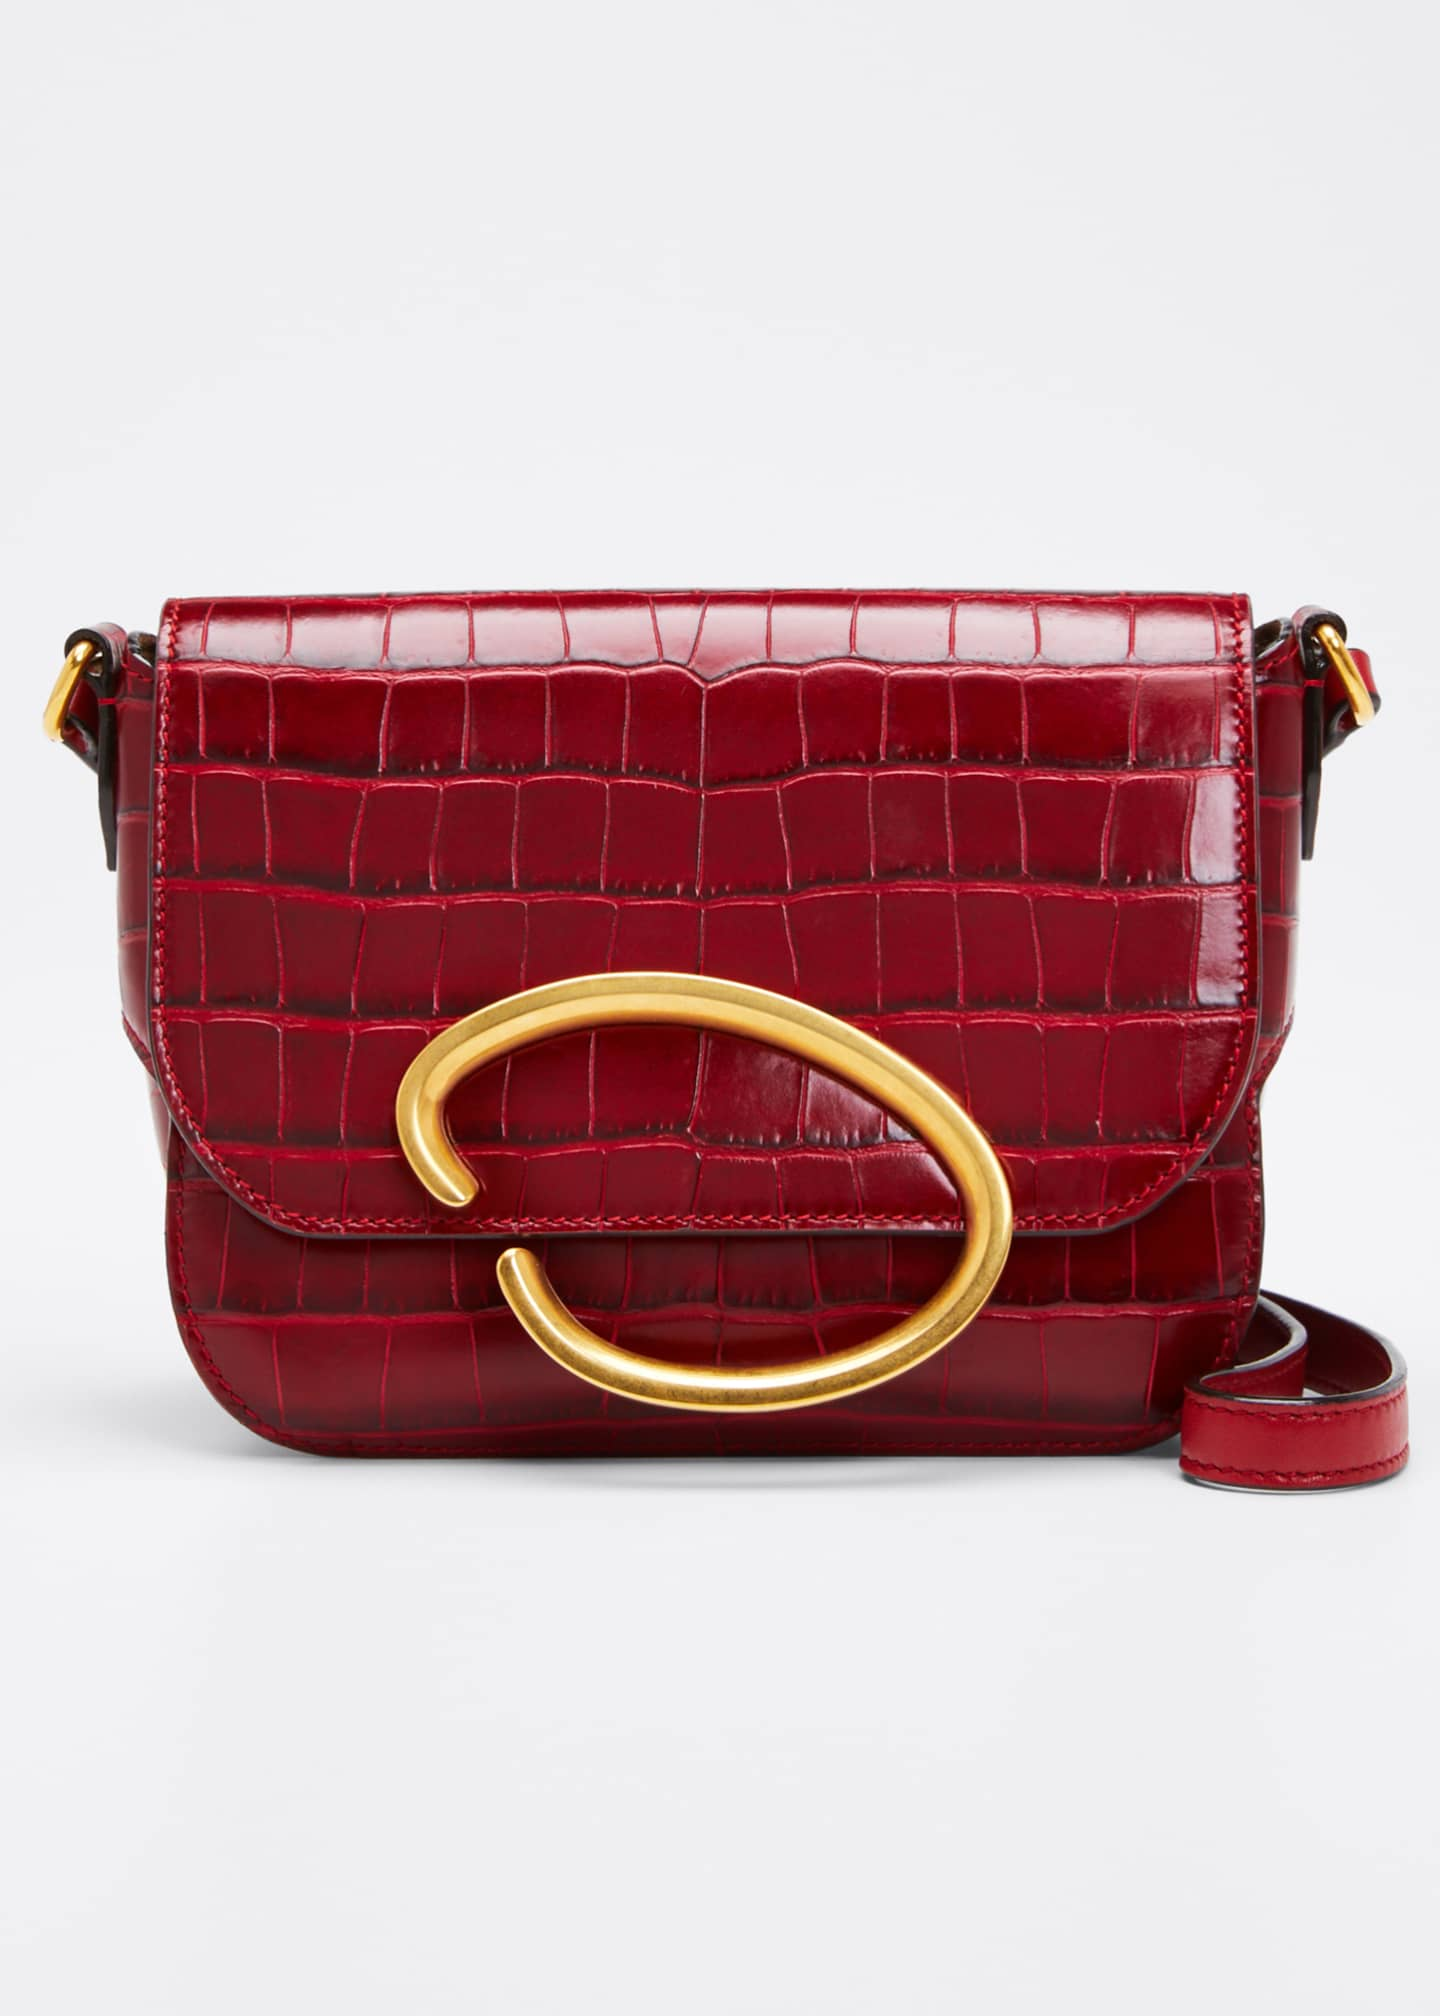 Oscar de la Renta Oath Mock-Croc Leather Shoulder